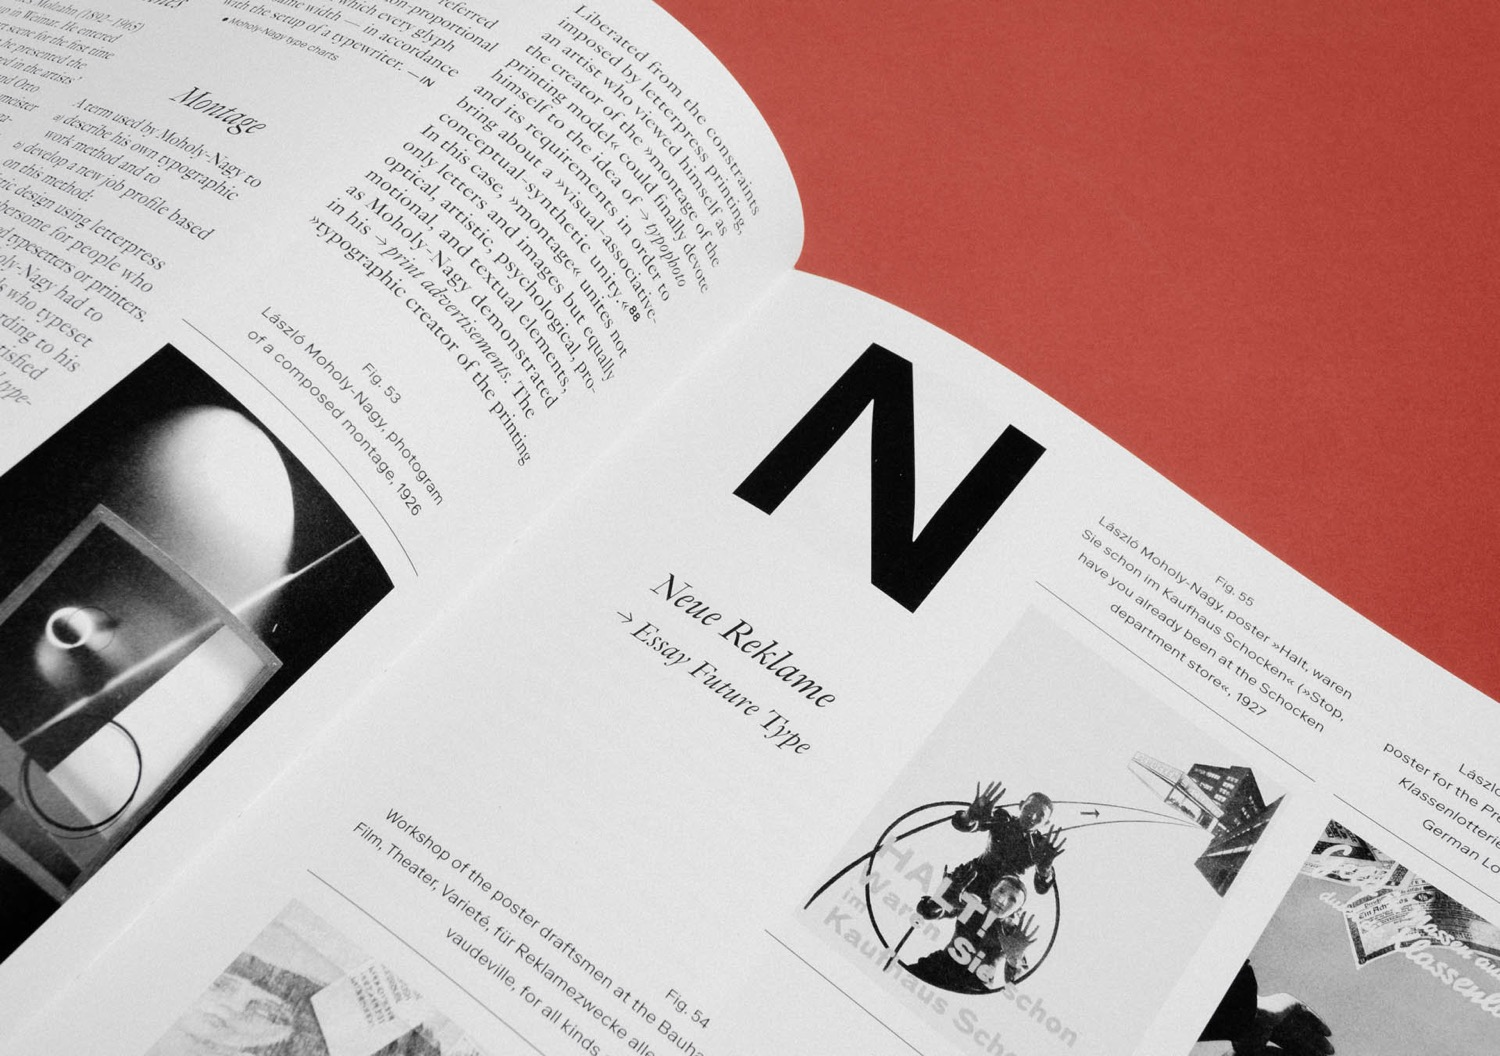 moholy nagy new typography 8